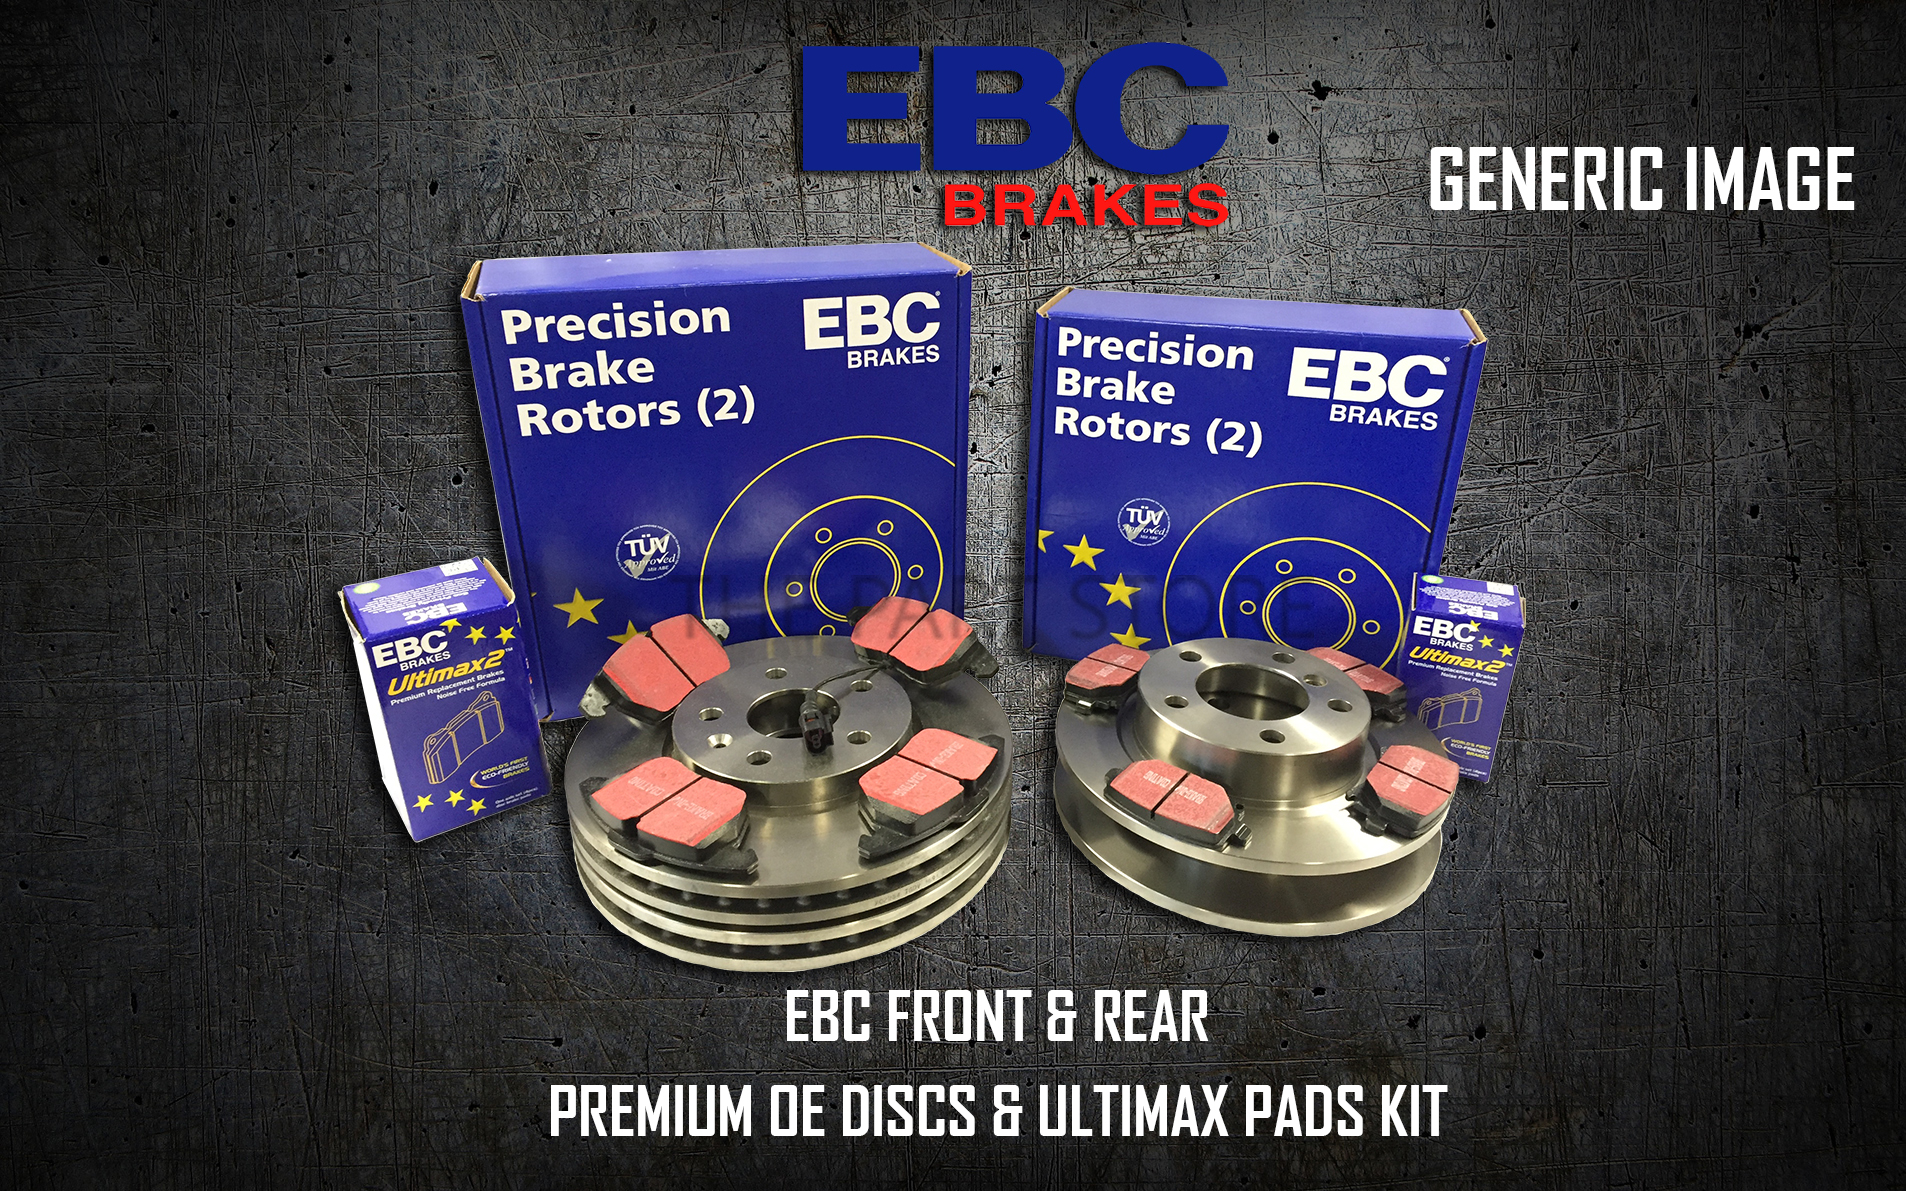 PD40K750 NEW EBC FRONT AND REAR BRAKE DISCS AND PADS KIT OE QUALITY REPLACE